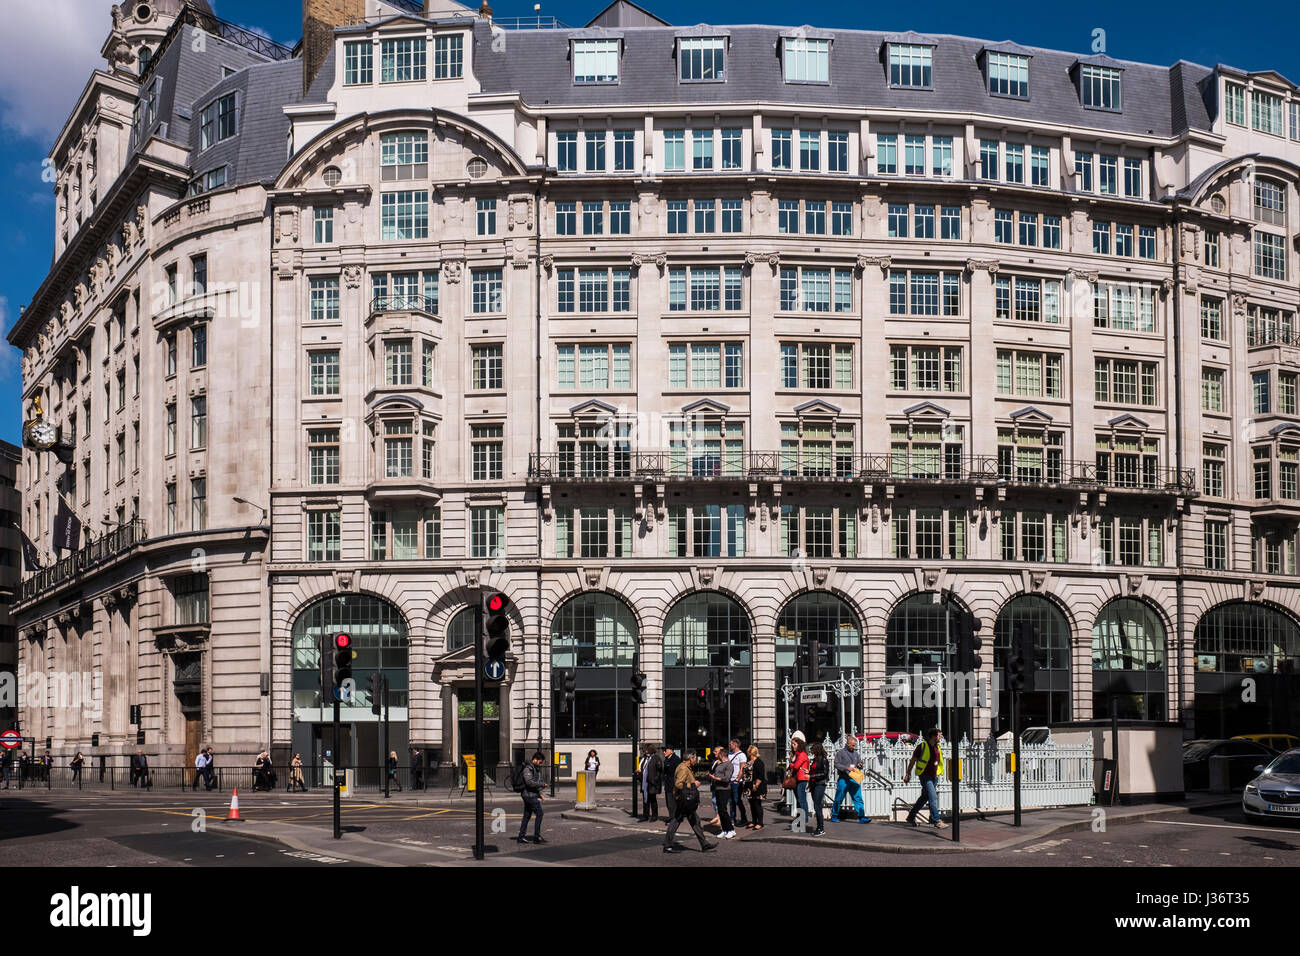 Gracechurch Centre housing the House of Fraser department store, City of London, England, U.K. - Stock Image